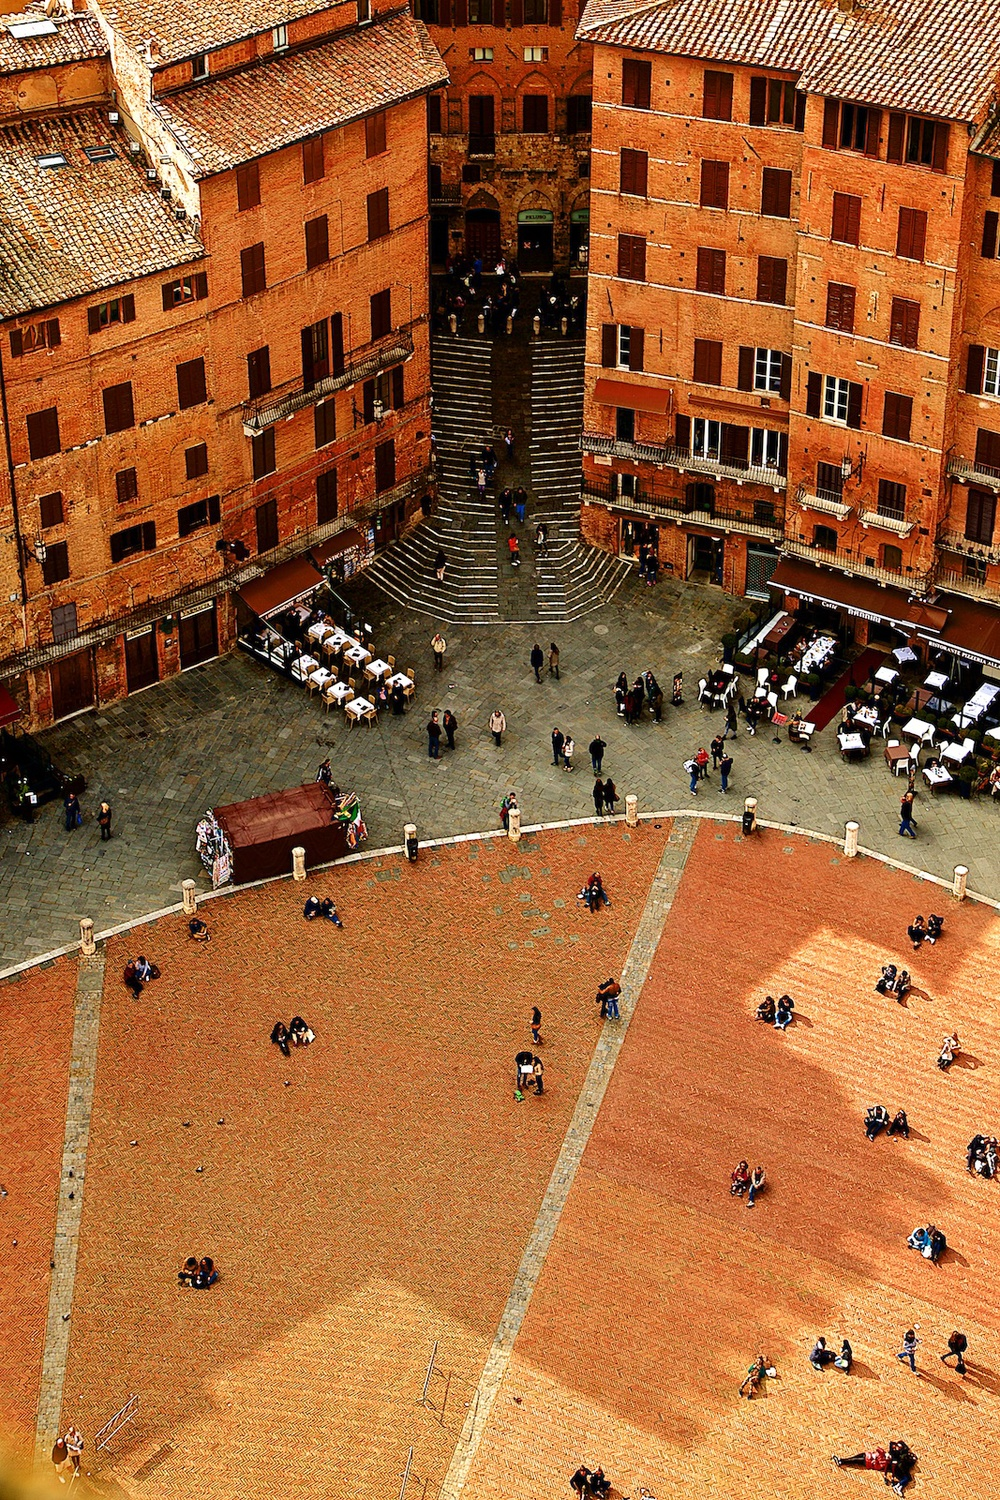 roofs-of-siena-toscana-tuscany-denis-bosnic-photography- 5.jpg